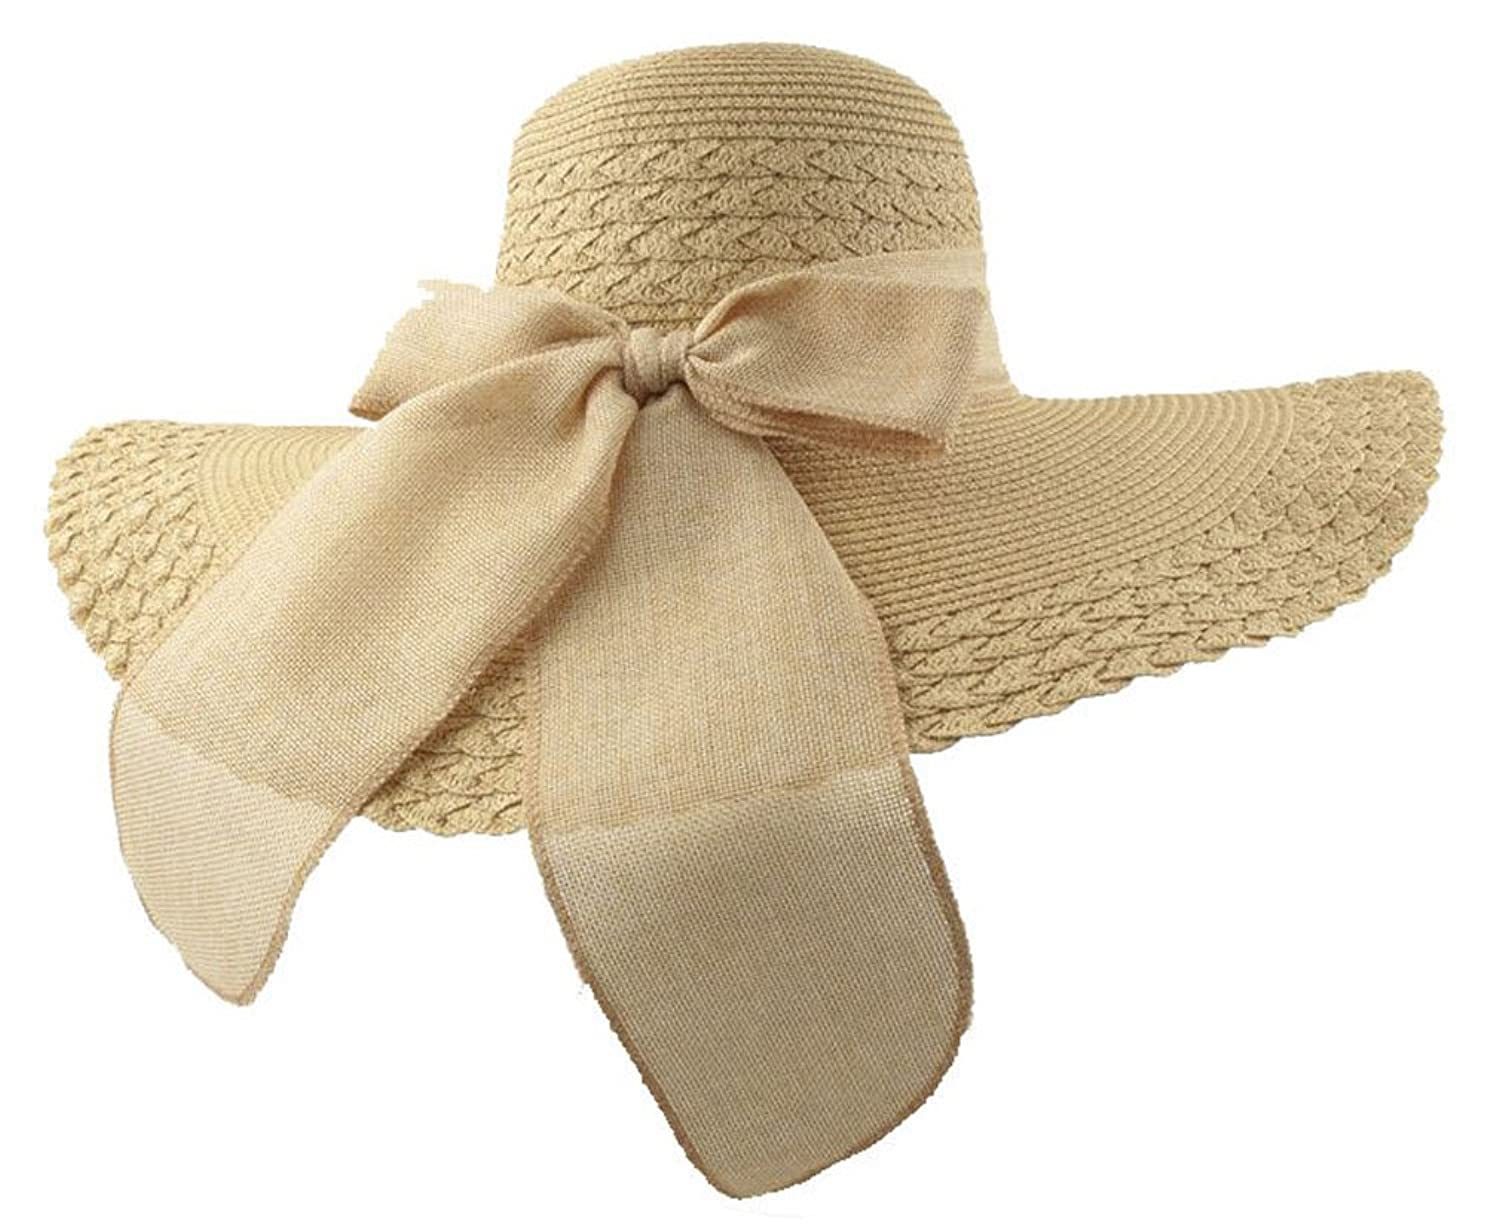 Beach Hats For Women Floppy Jtc(tm Women Floppy Sun Hat